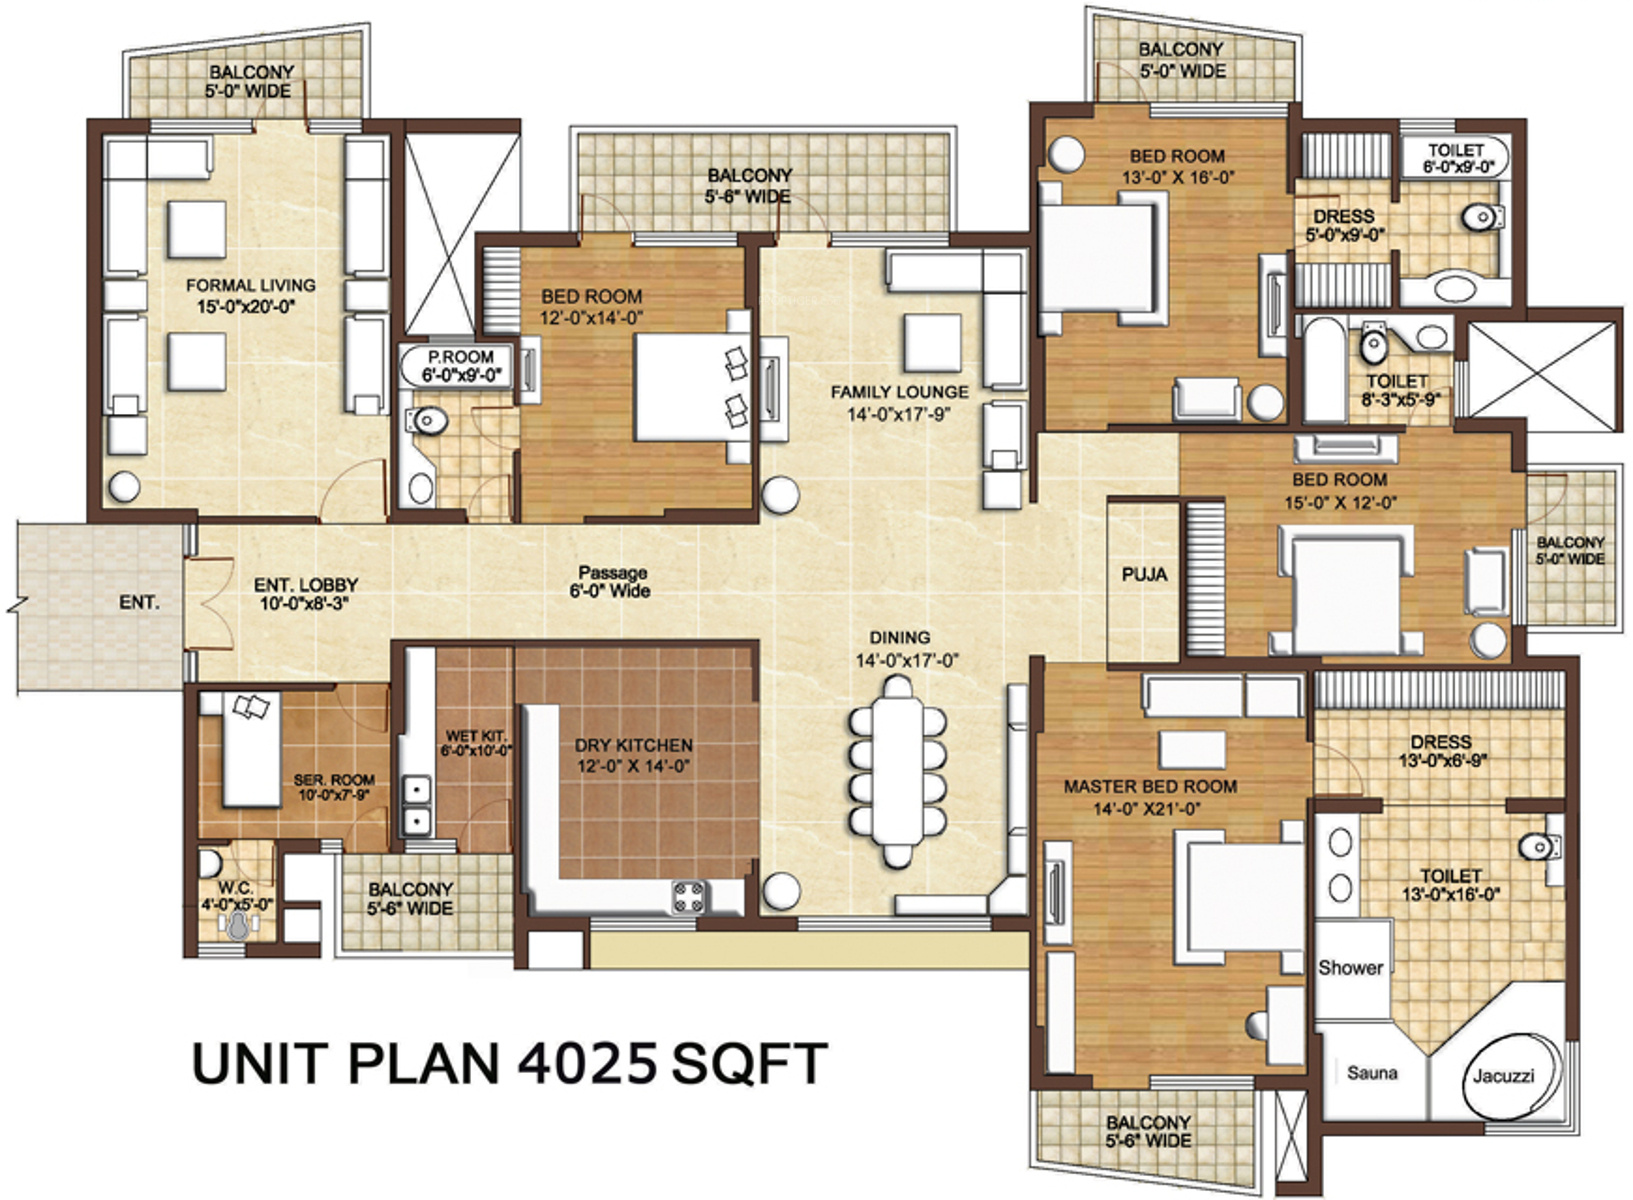 Grand Floridian 2 Bedroom Villa Floor Plan 28 Images Sleeping Space Options And Bed Types At